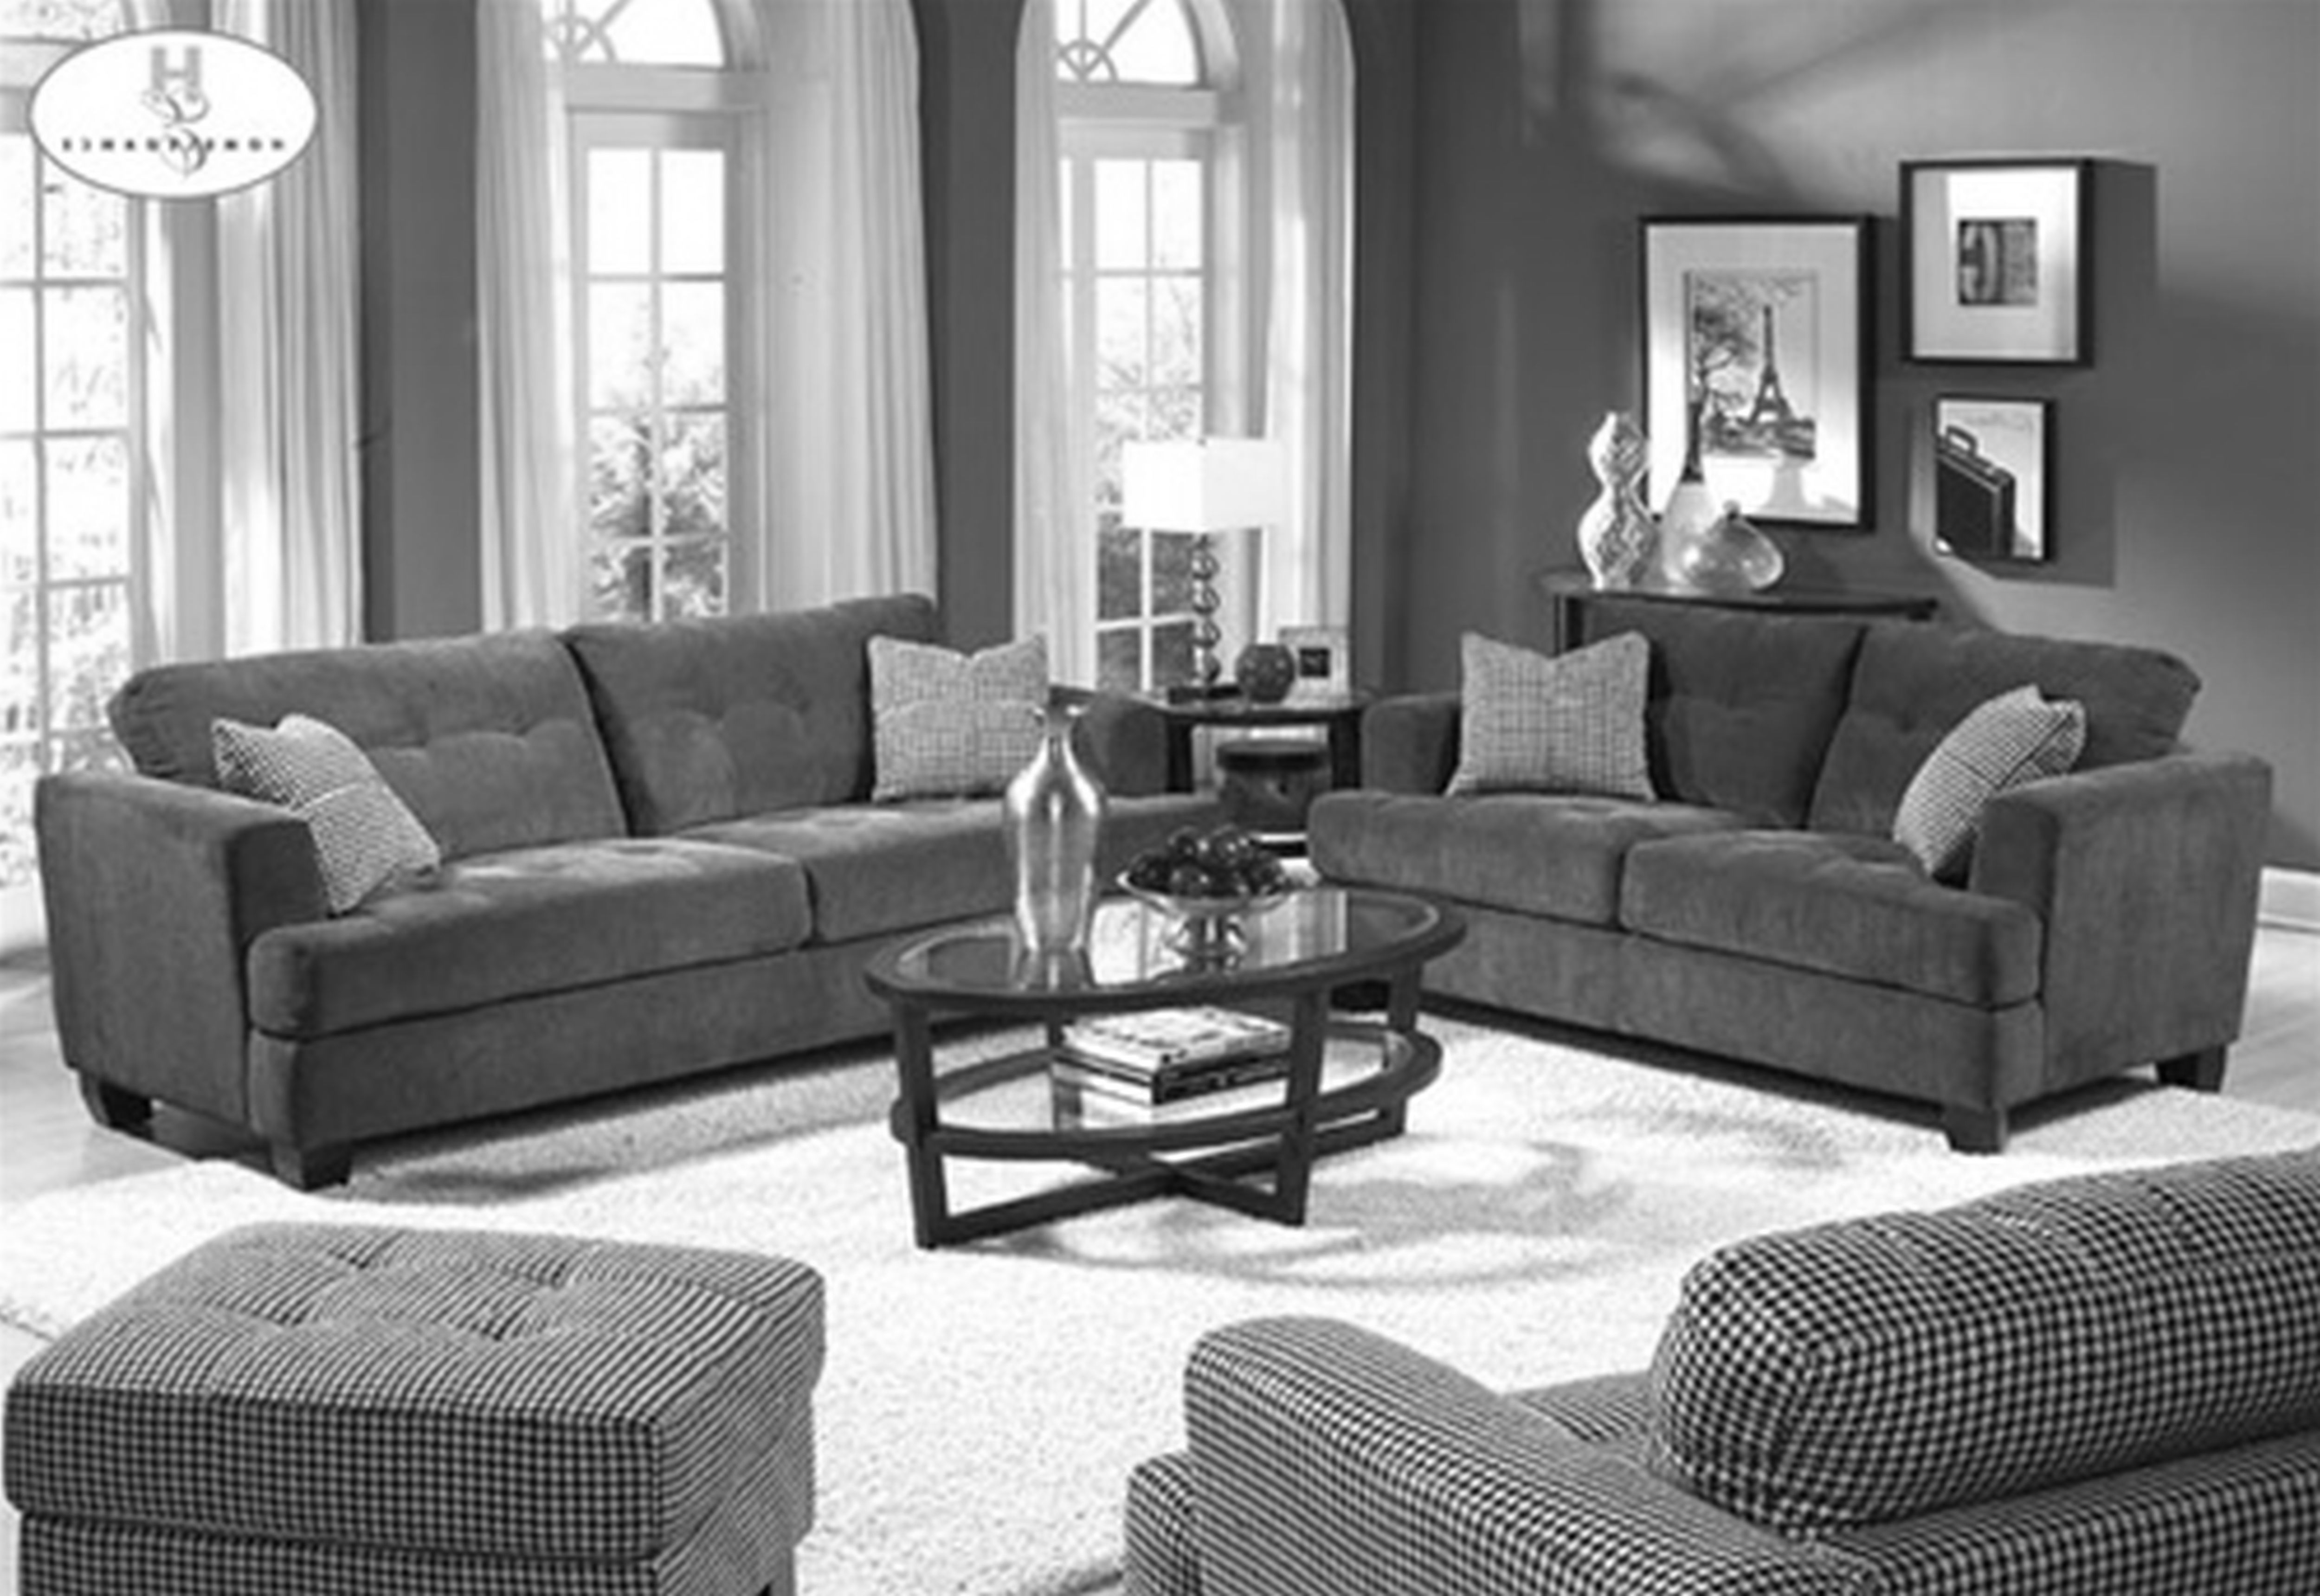 Latest Grey Crystal Chandelier Within Living Room Ideas Grey Walls Sofa Chairs Crystal Chandelier Grey (View 13 of 20)